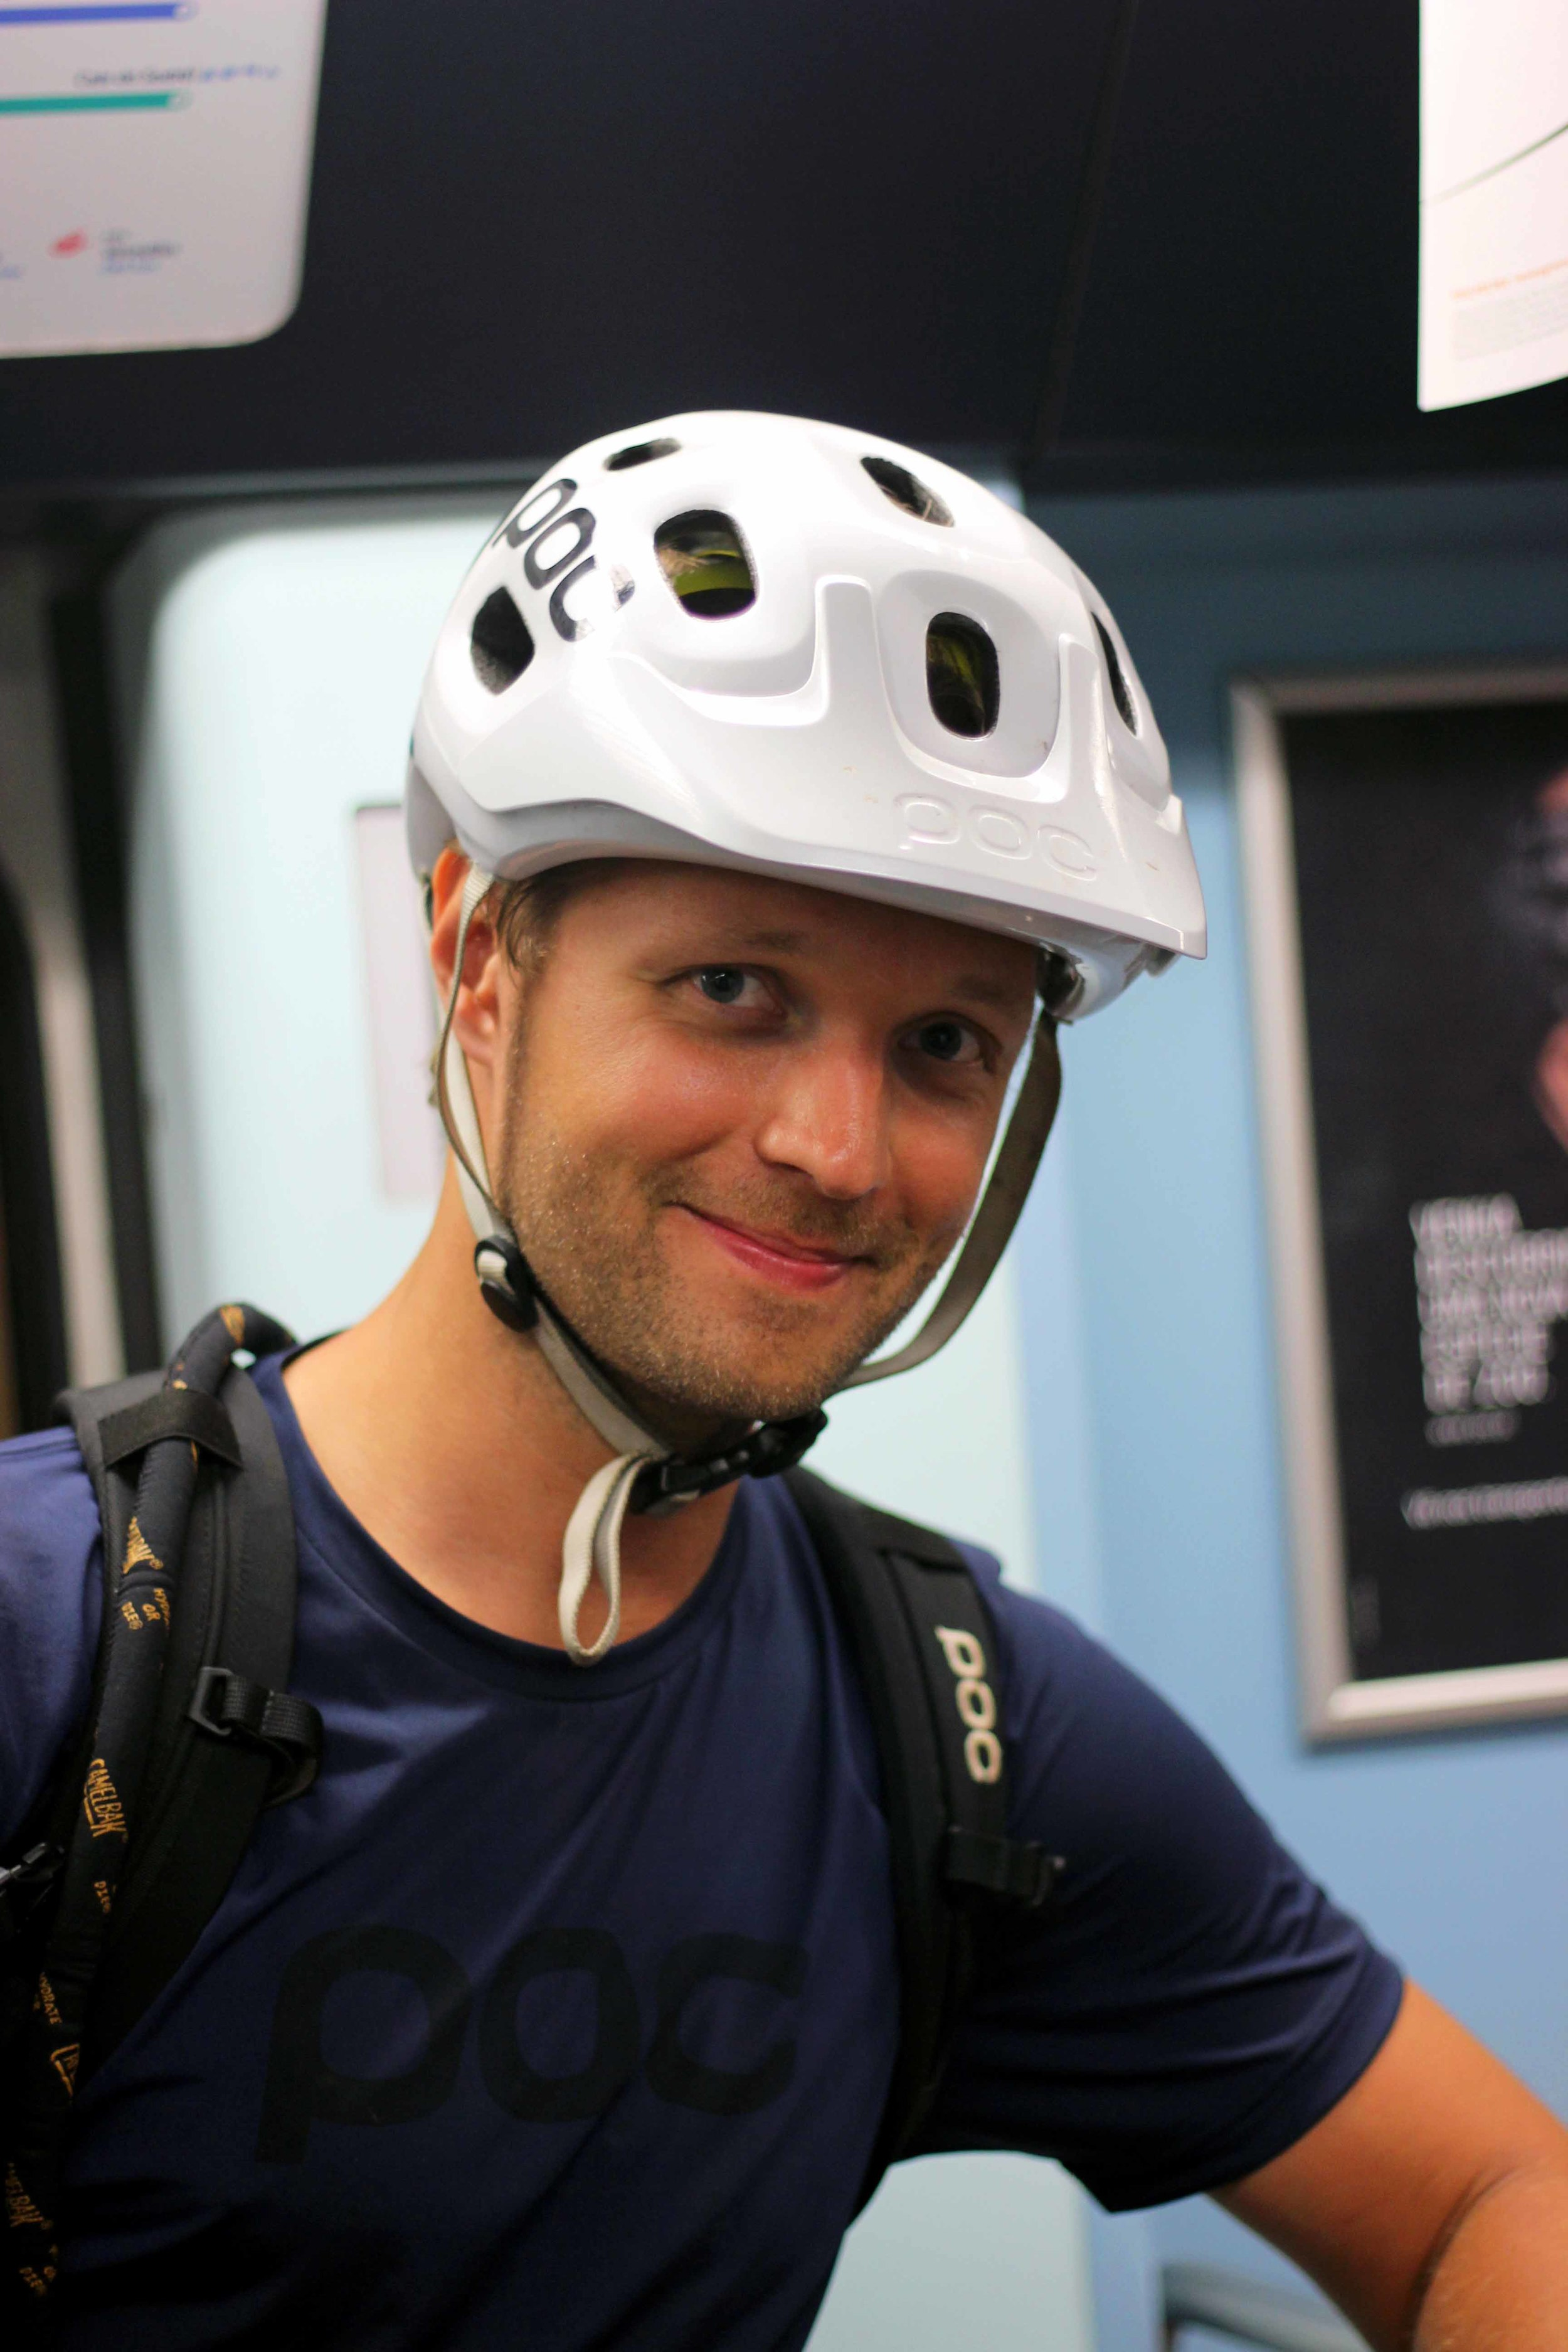 Michael, really happy with the Lisbon Night Ride